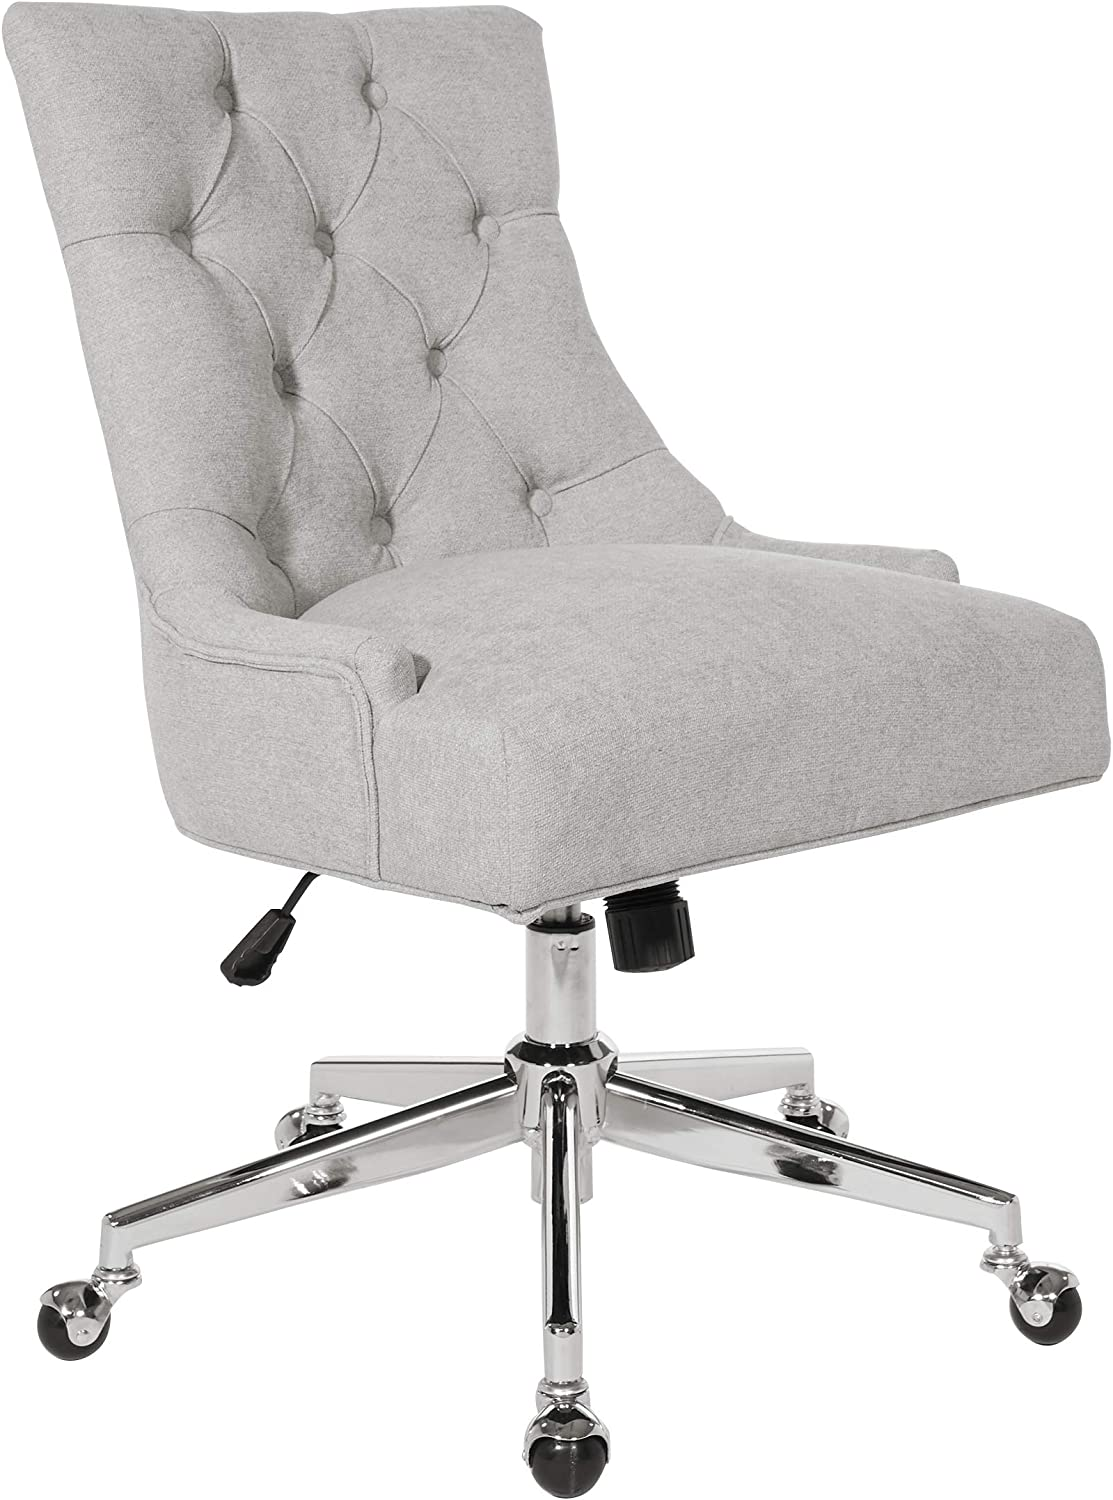 OSP Home Furnishings Amelia Office Chair, Fog